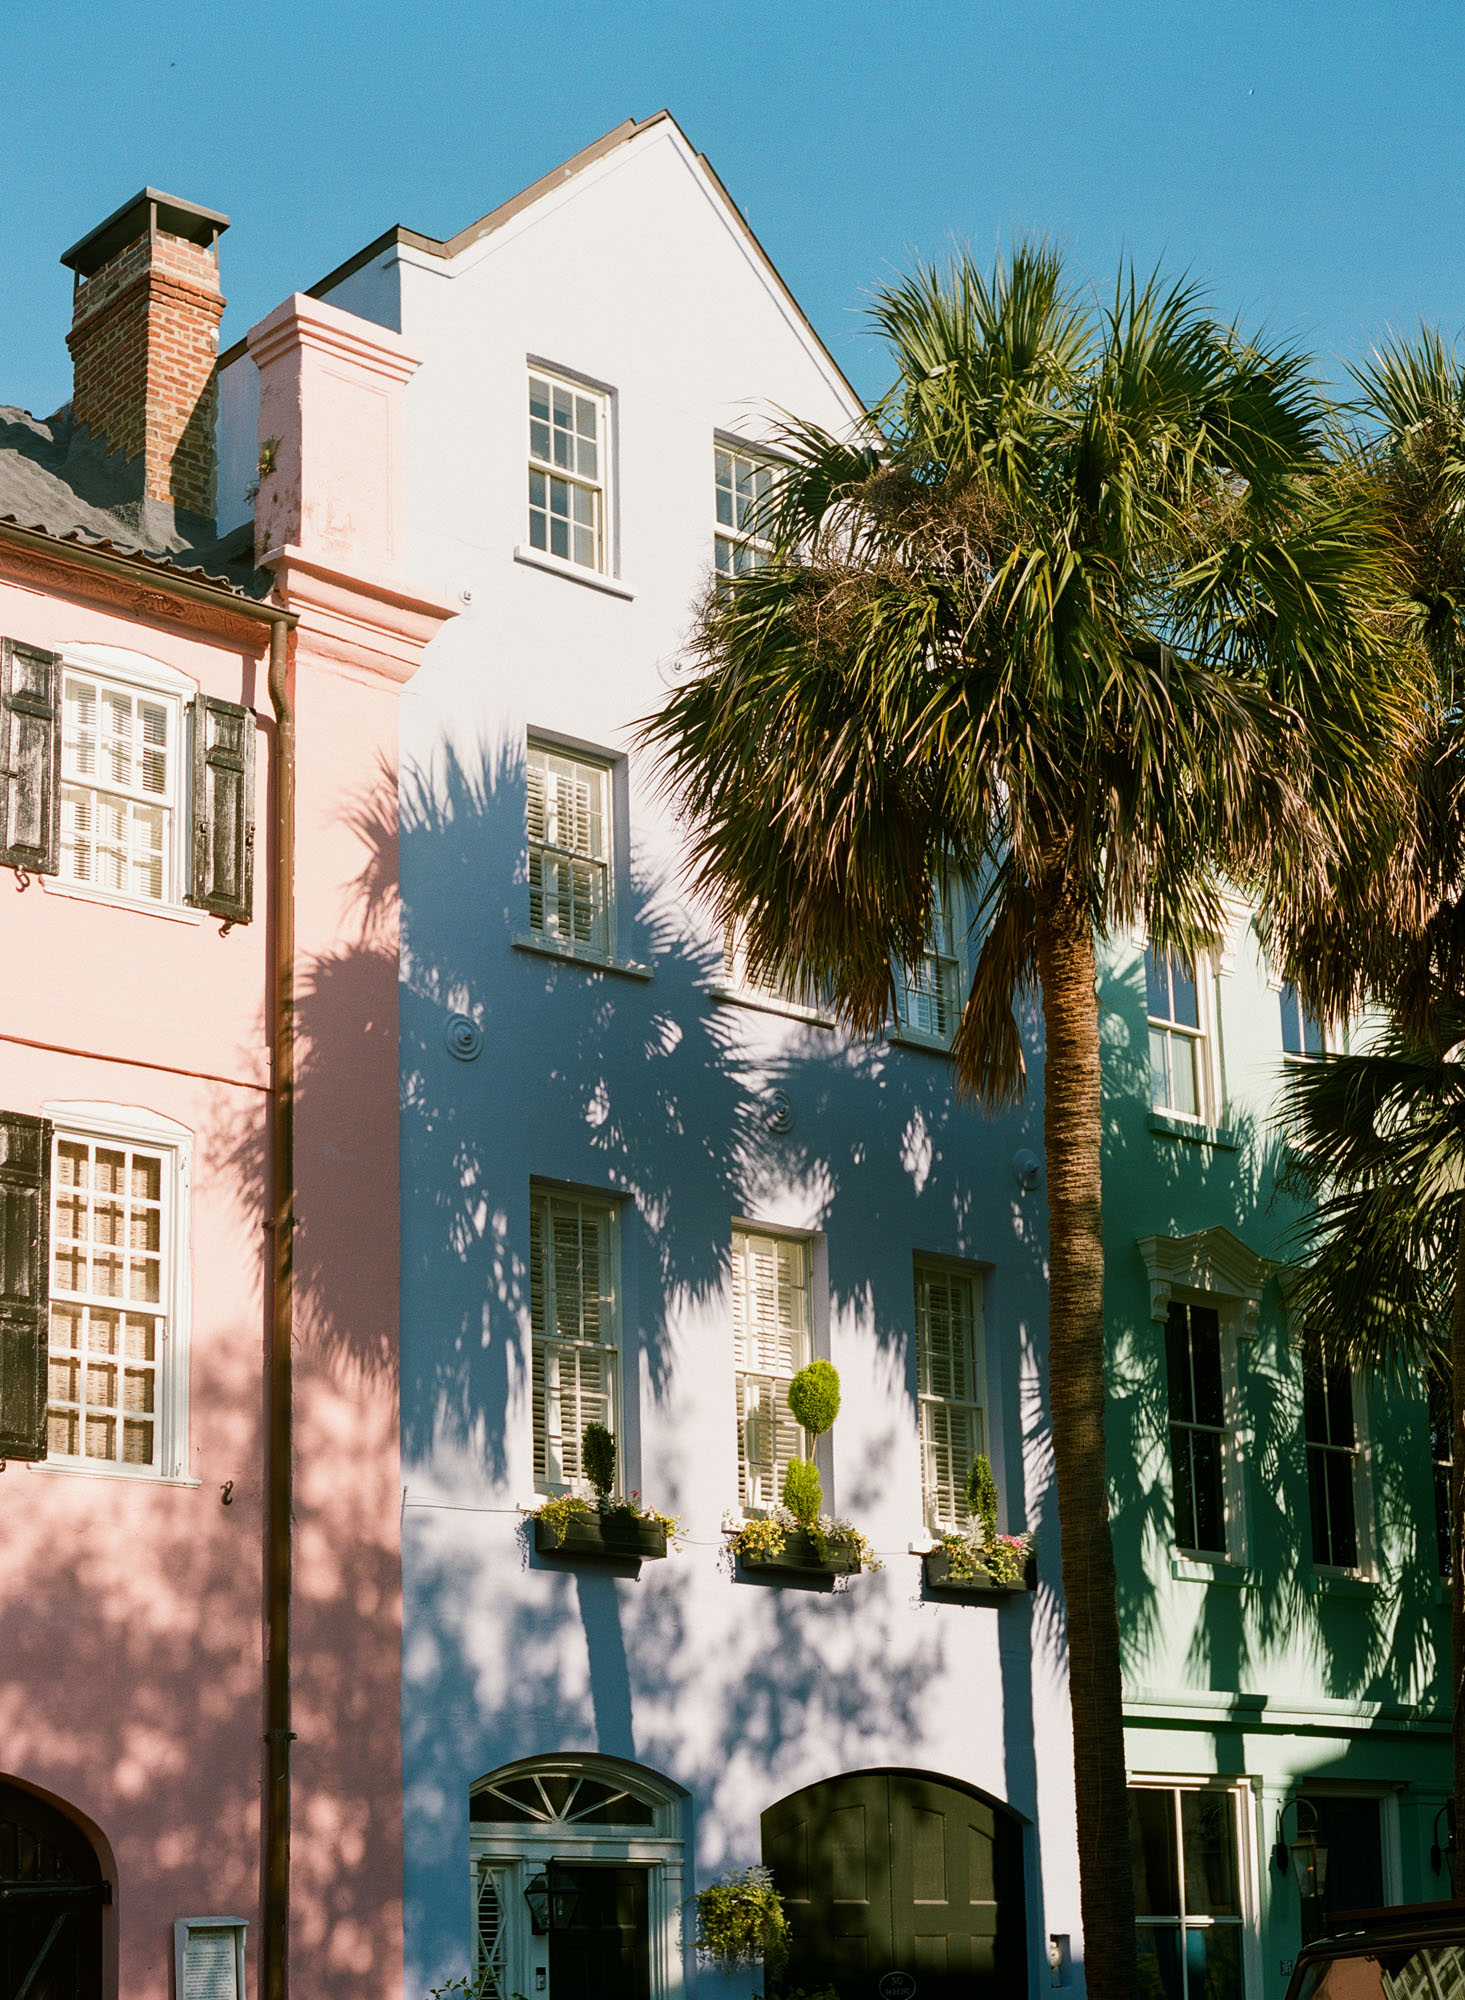 charleston-rainbow-row-film-photography-35mm-film-analog-charleston-photographer-001